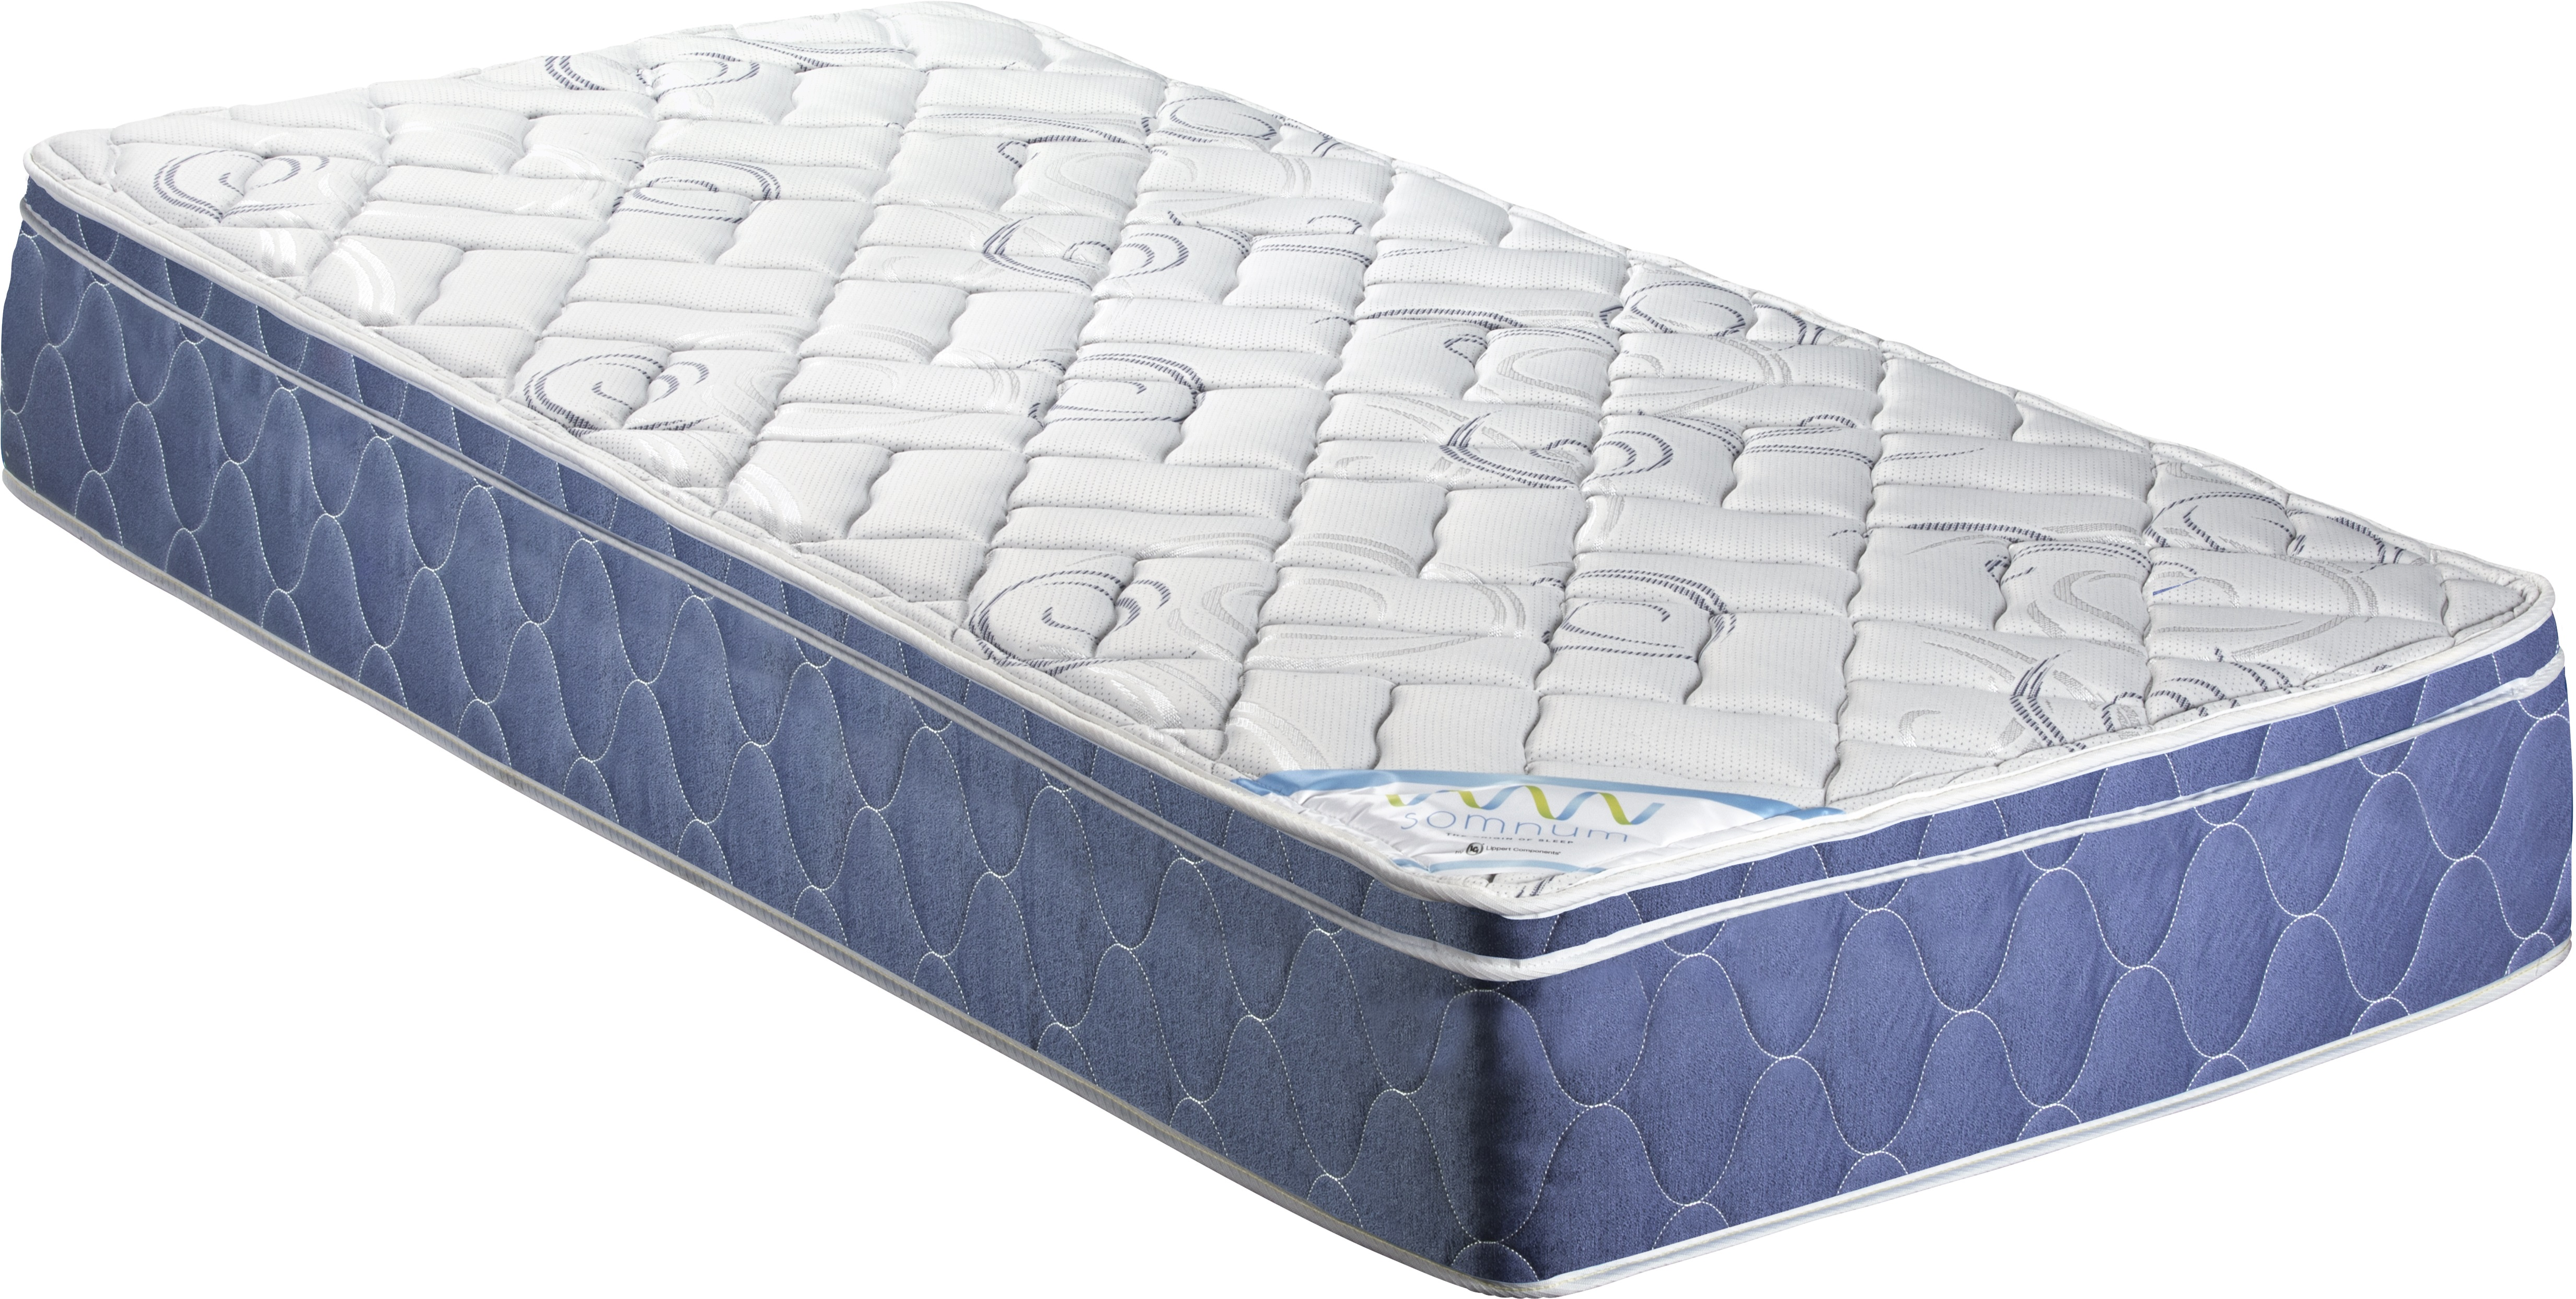 bed original truck mattress air jeep for airbedz